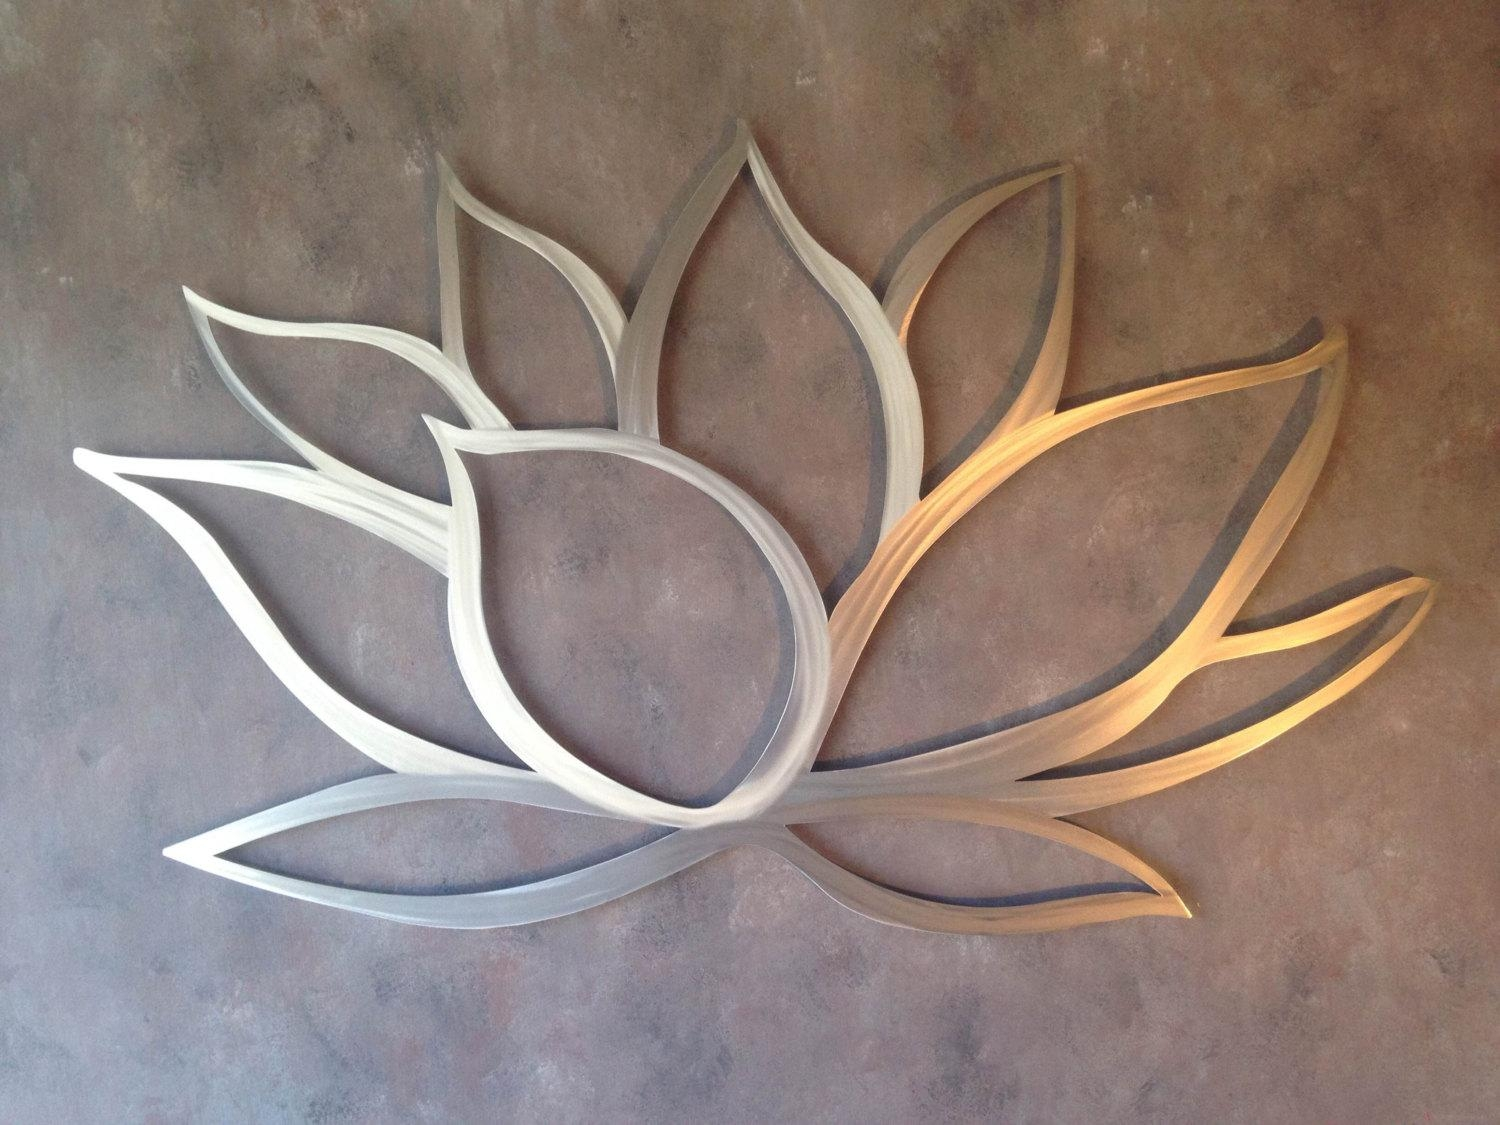 Express The Metal Feng Shui Element In Your Home Or Office With Within Metallic Wall Art (Image 6 of 20)